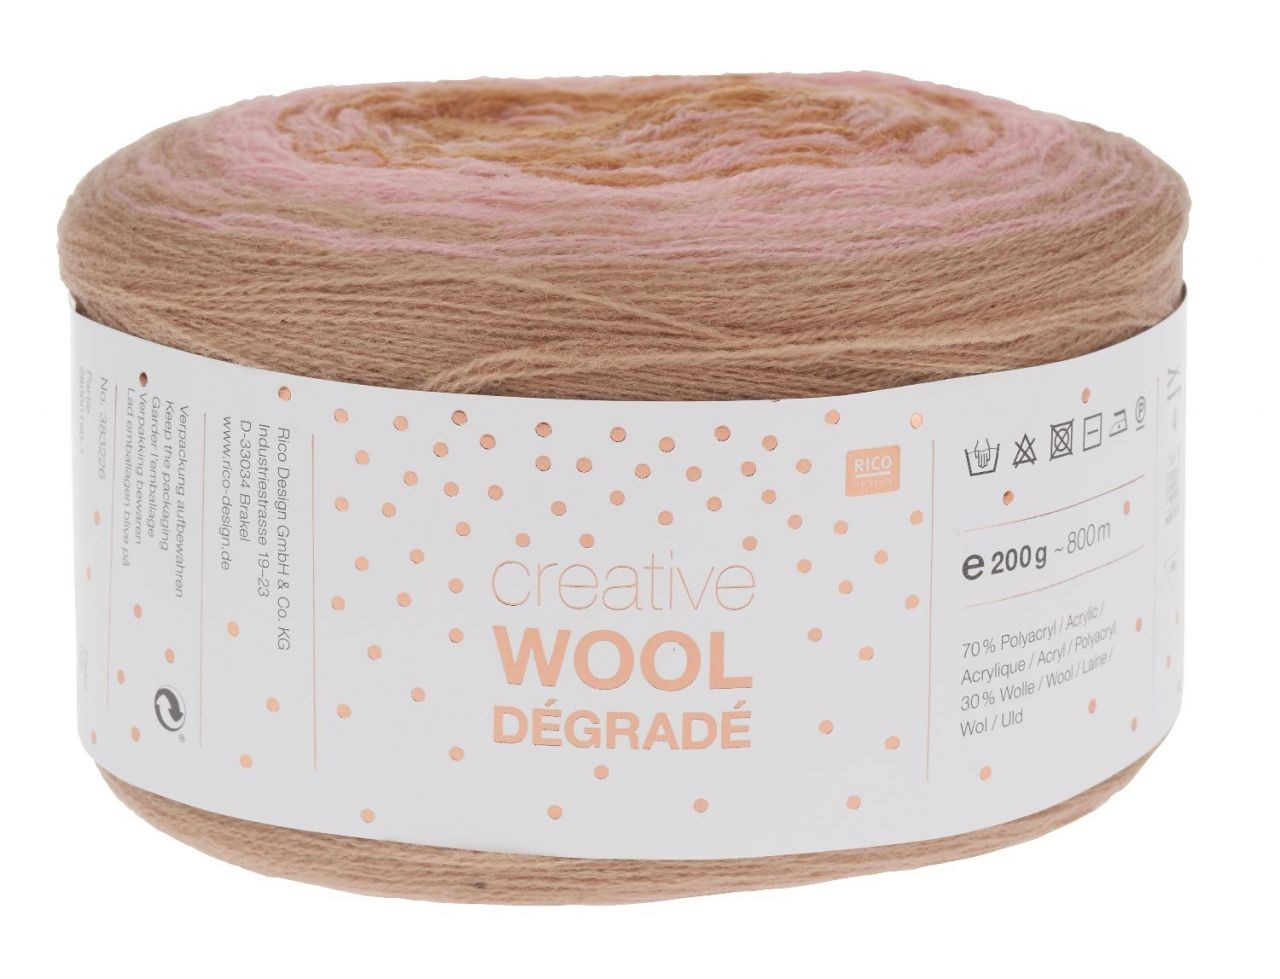 7 Creative wool degrade rico.jpg